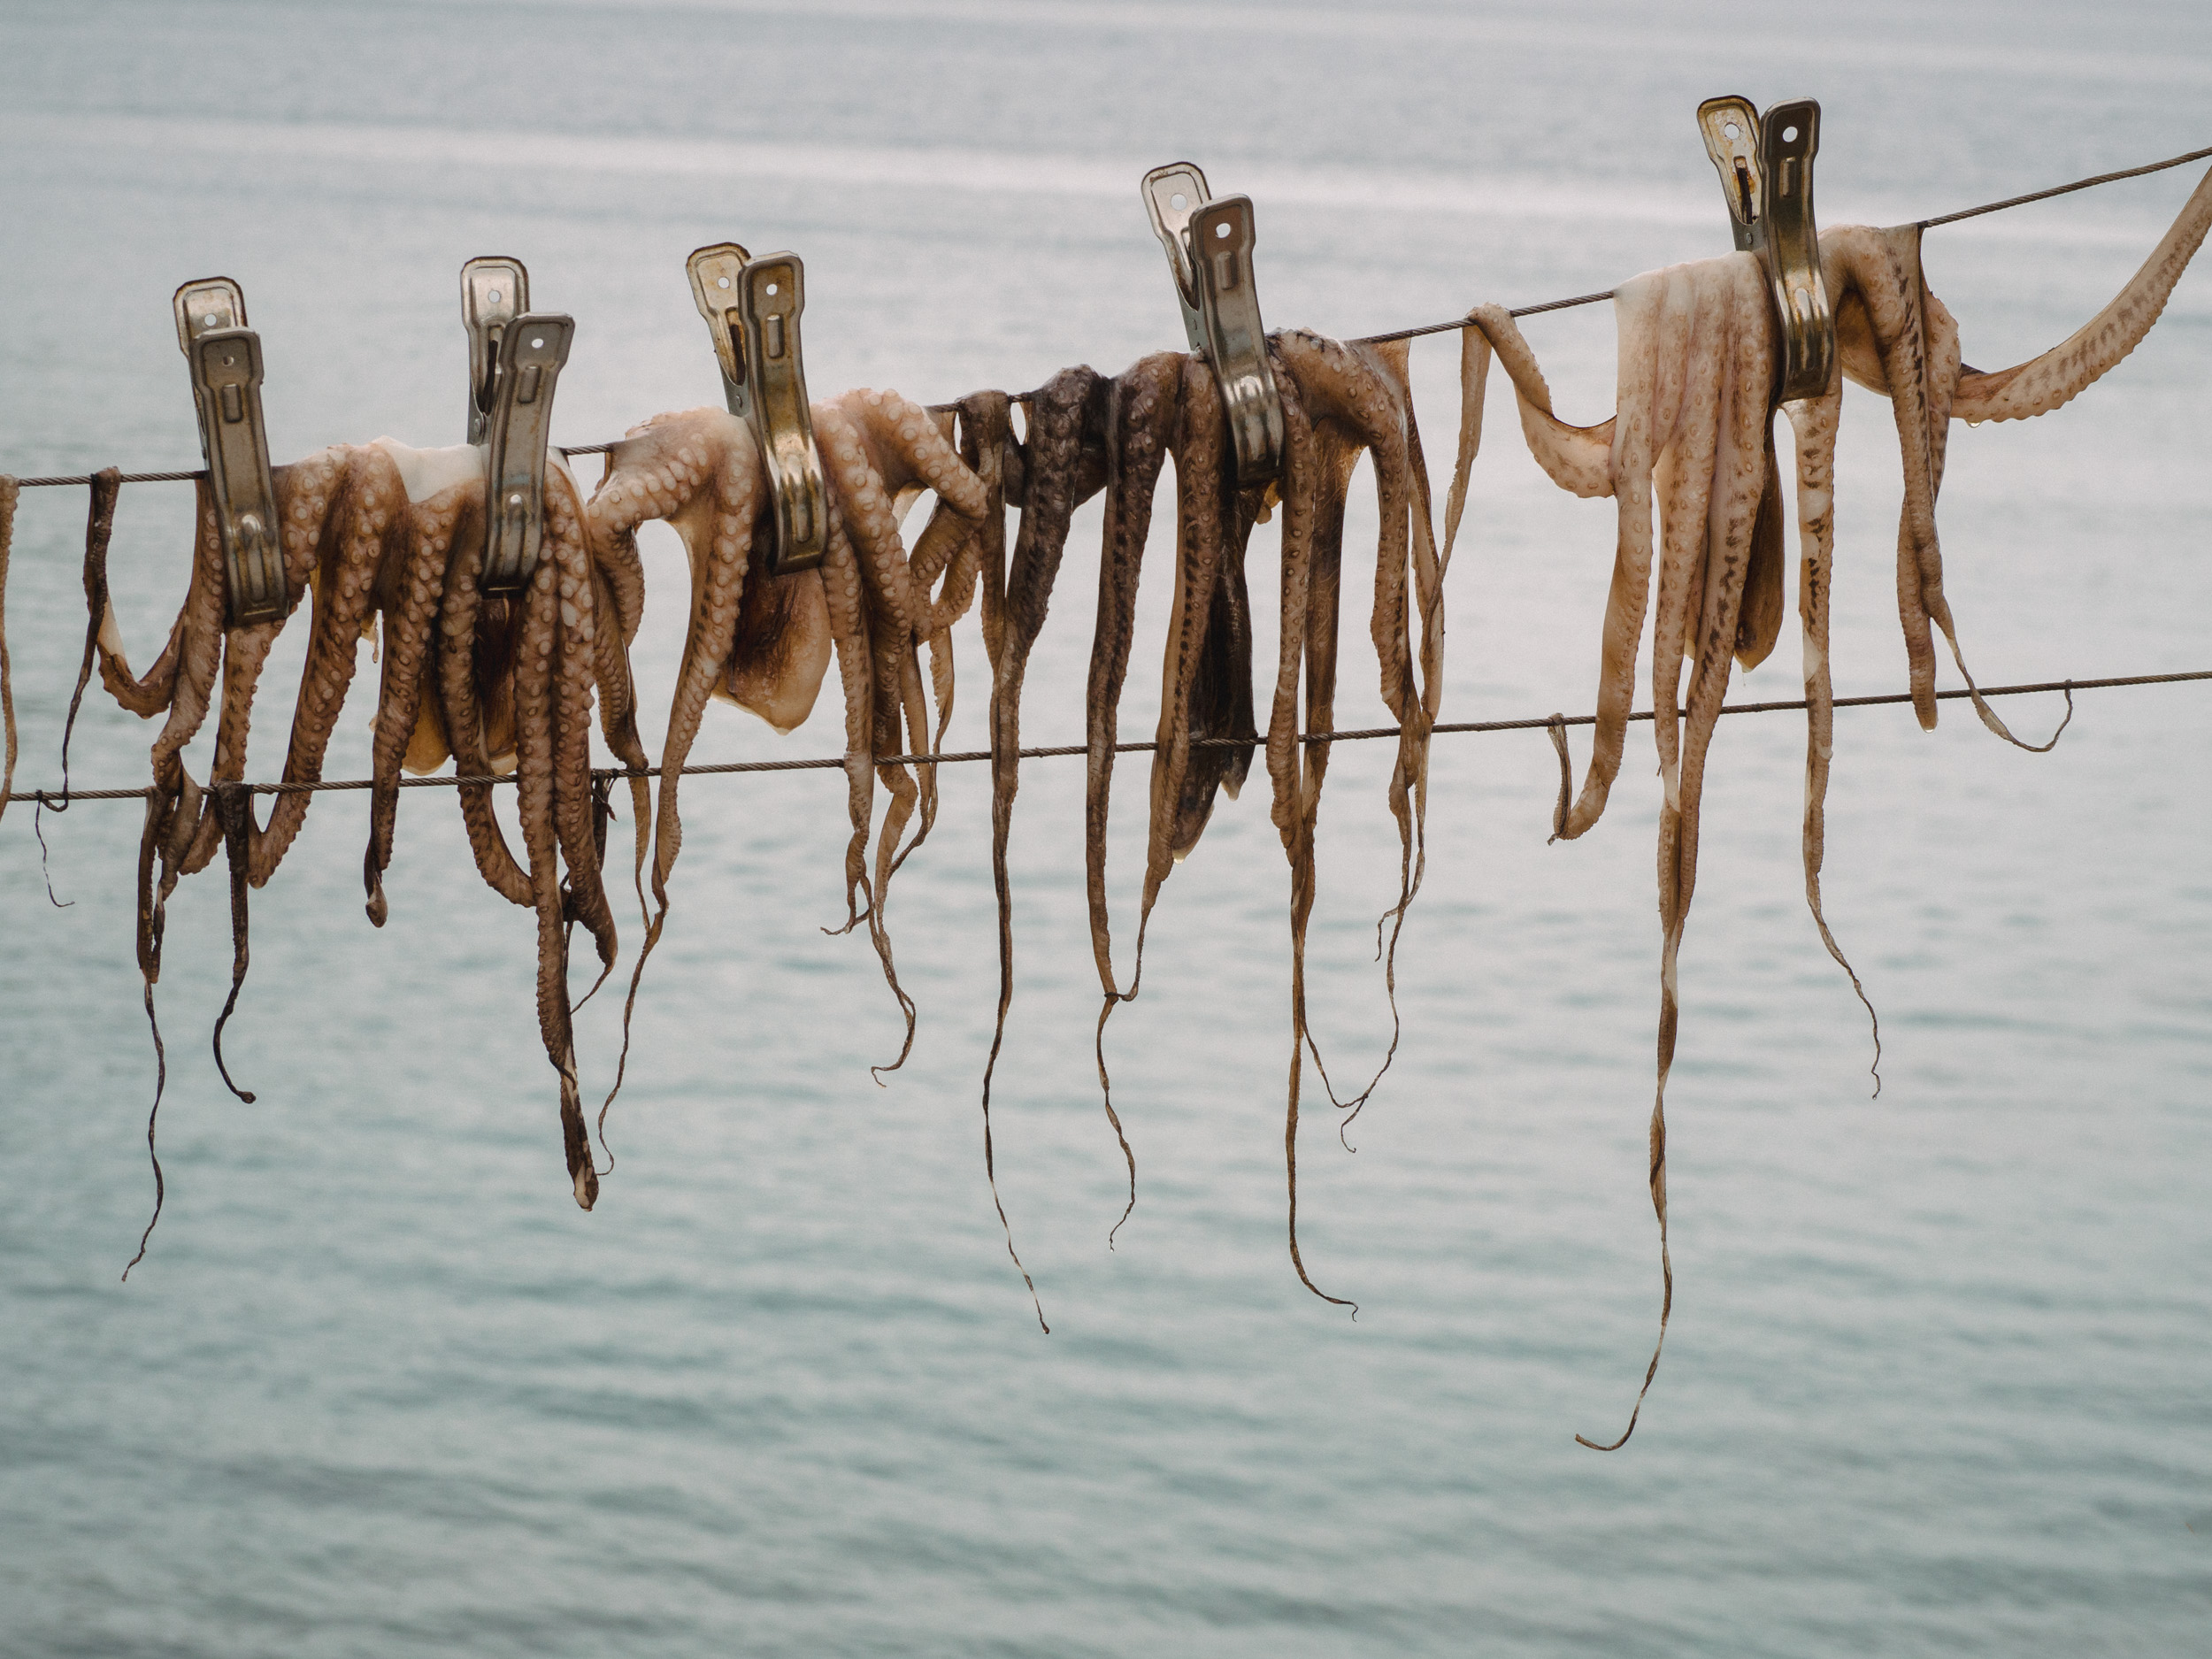 Octopus drying on the line